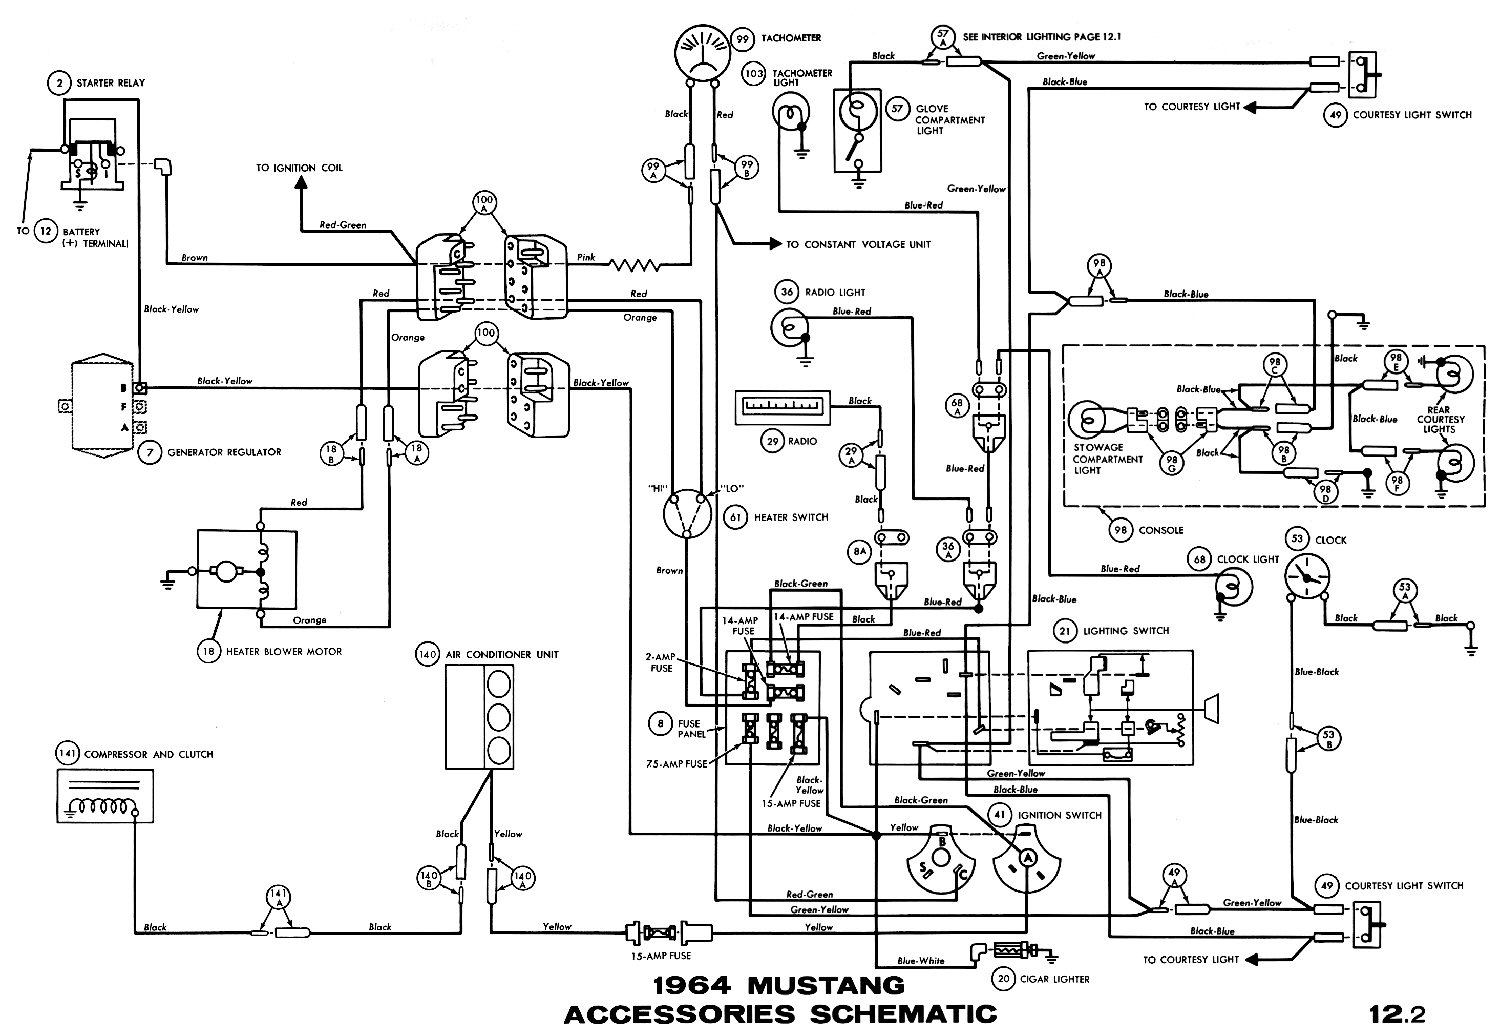 1969 mustang ignition wiring diagram wiring diagram u2022 rh tinyforge co 1969 mustang wiring diagram pdf 1969 mustang wiring diagram download